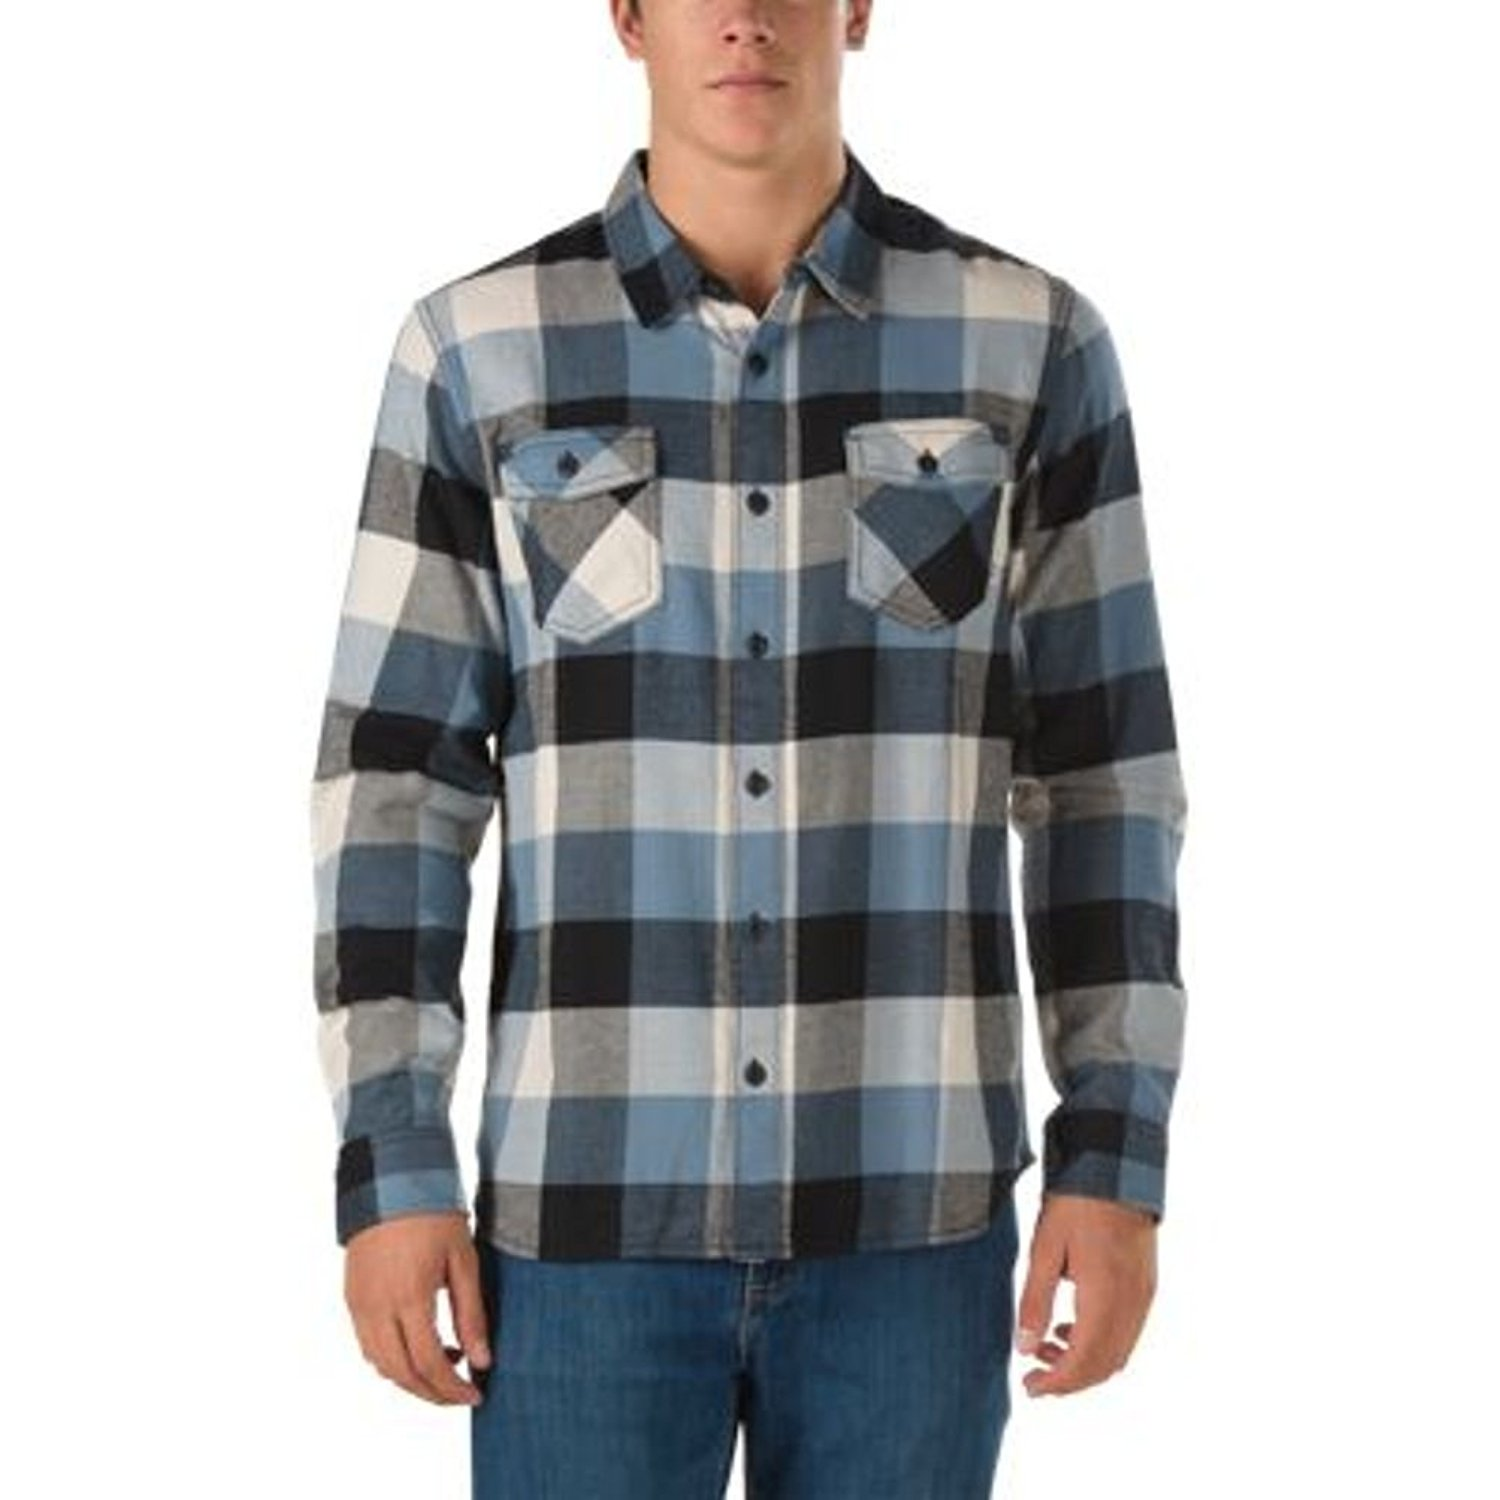 df416ddc6 Get Quotations · Vans Men s Box Flannel Plaid Long Sleeve Shirt (Large